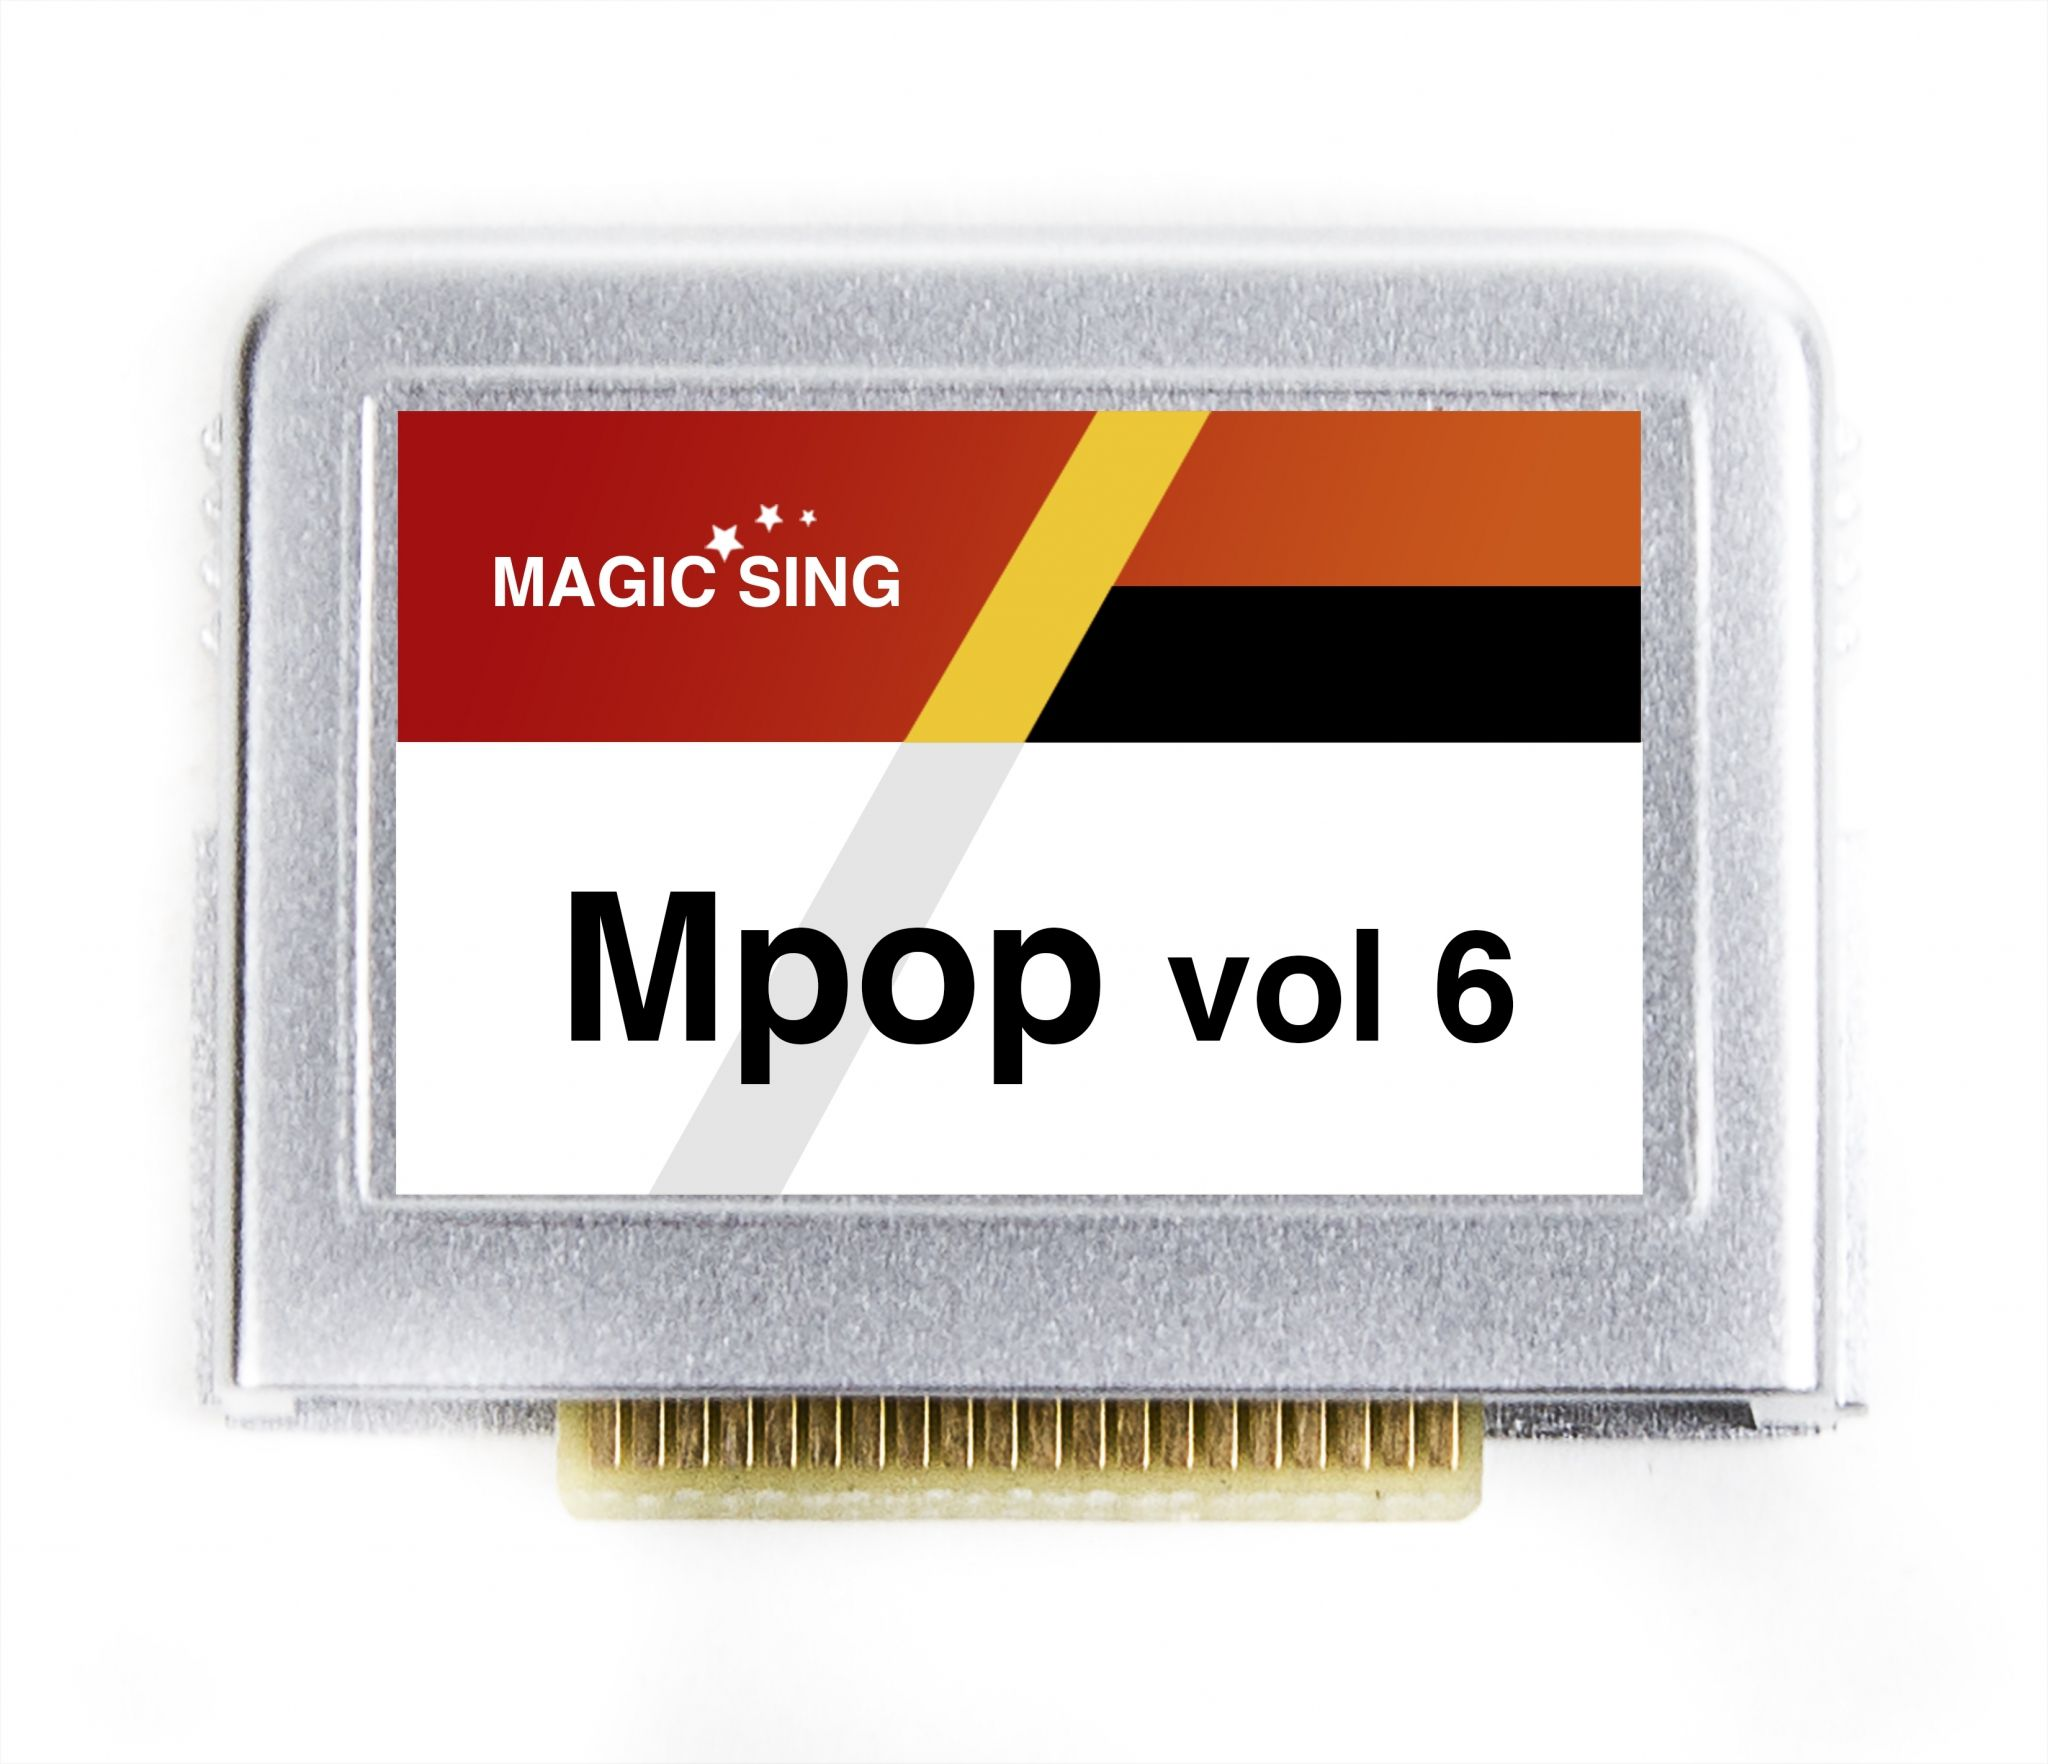 Mpop vol 6 (Vegas Elvis)